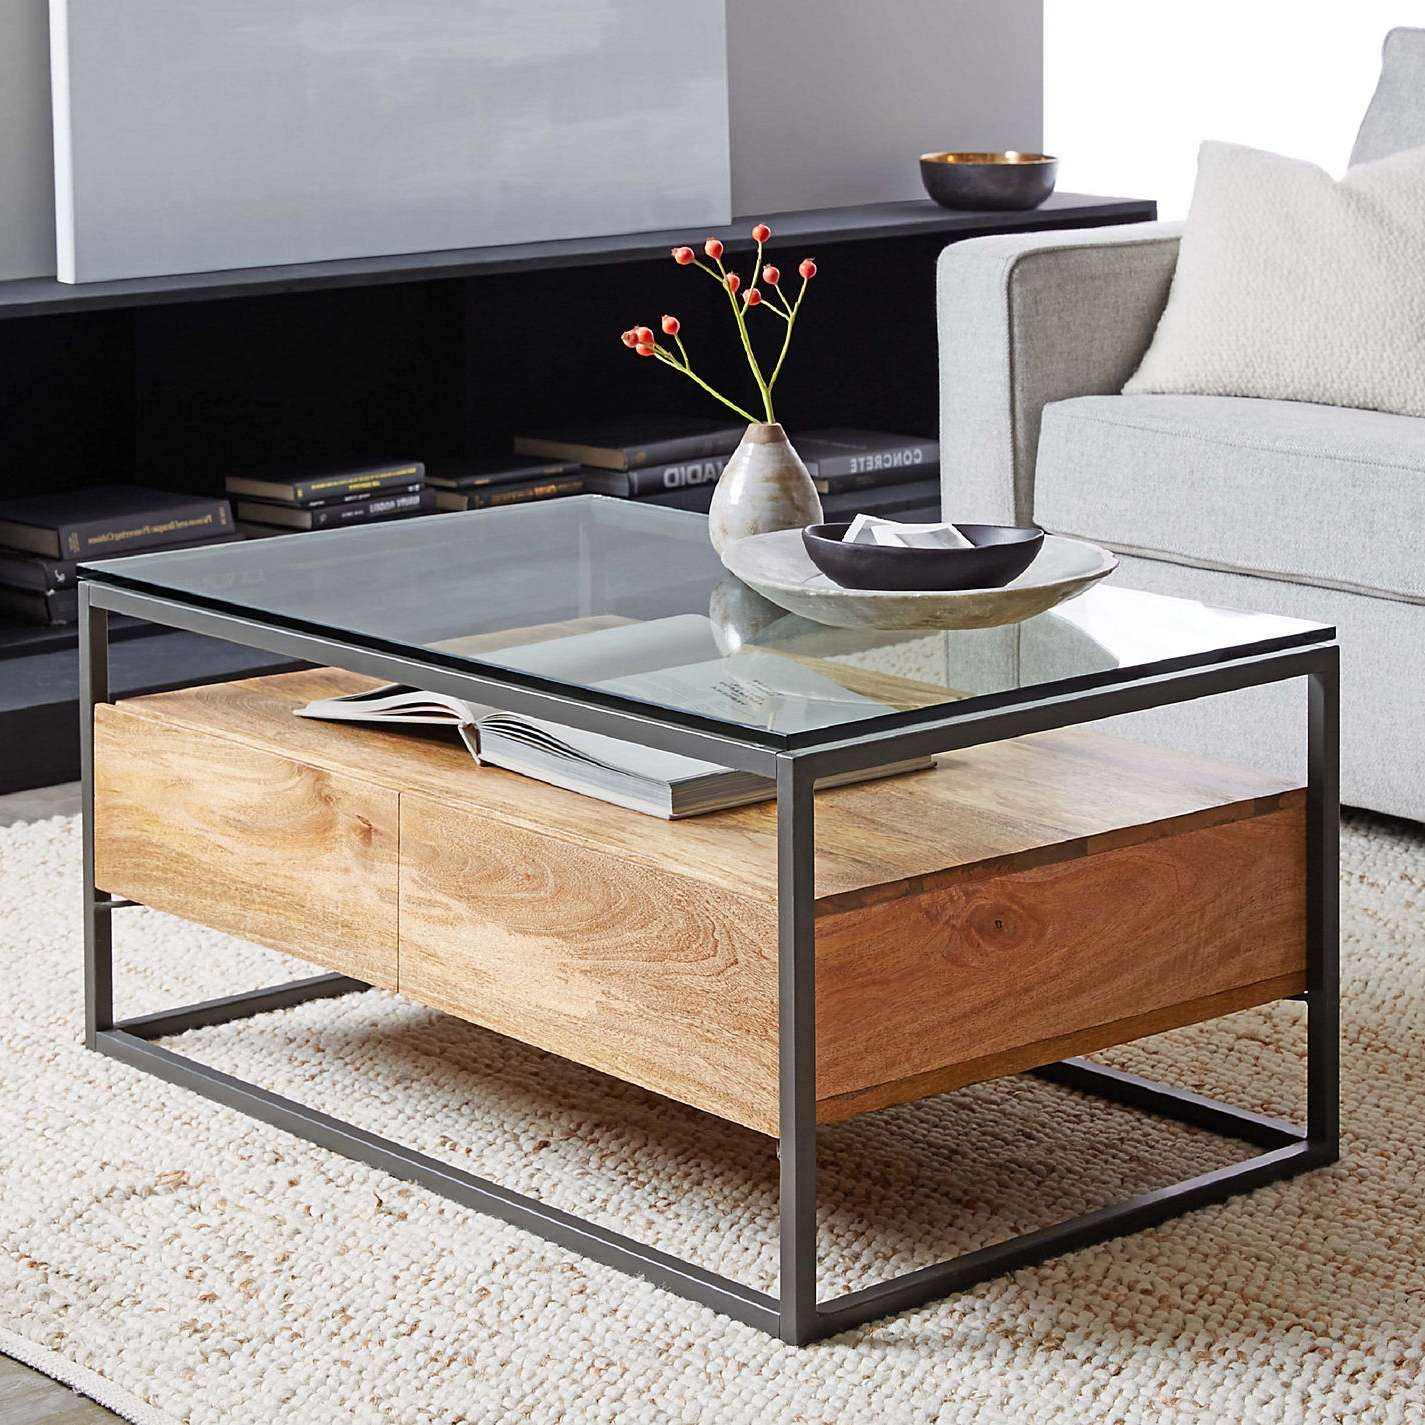 Coffee Table : Fabulous Coffee Table Sets Black Square Coffee In Newest Square Coffee Tables With Storage (View 16 of 20)